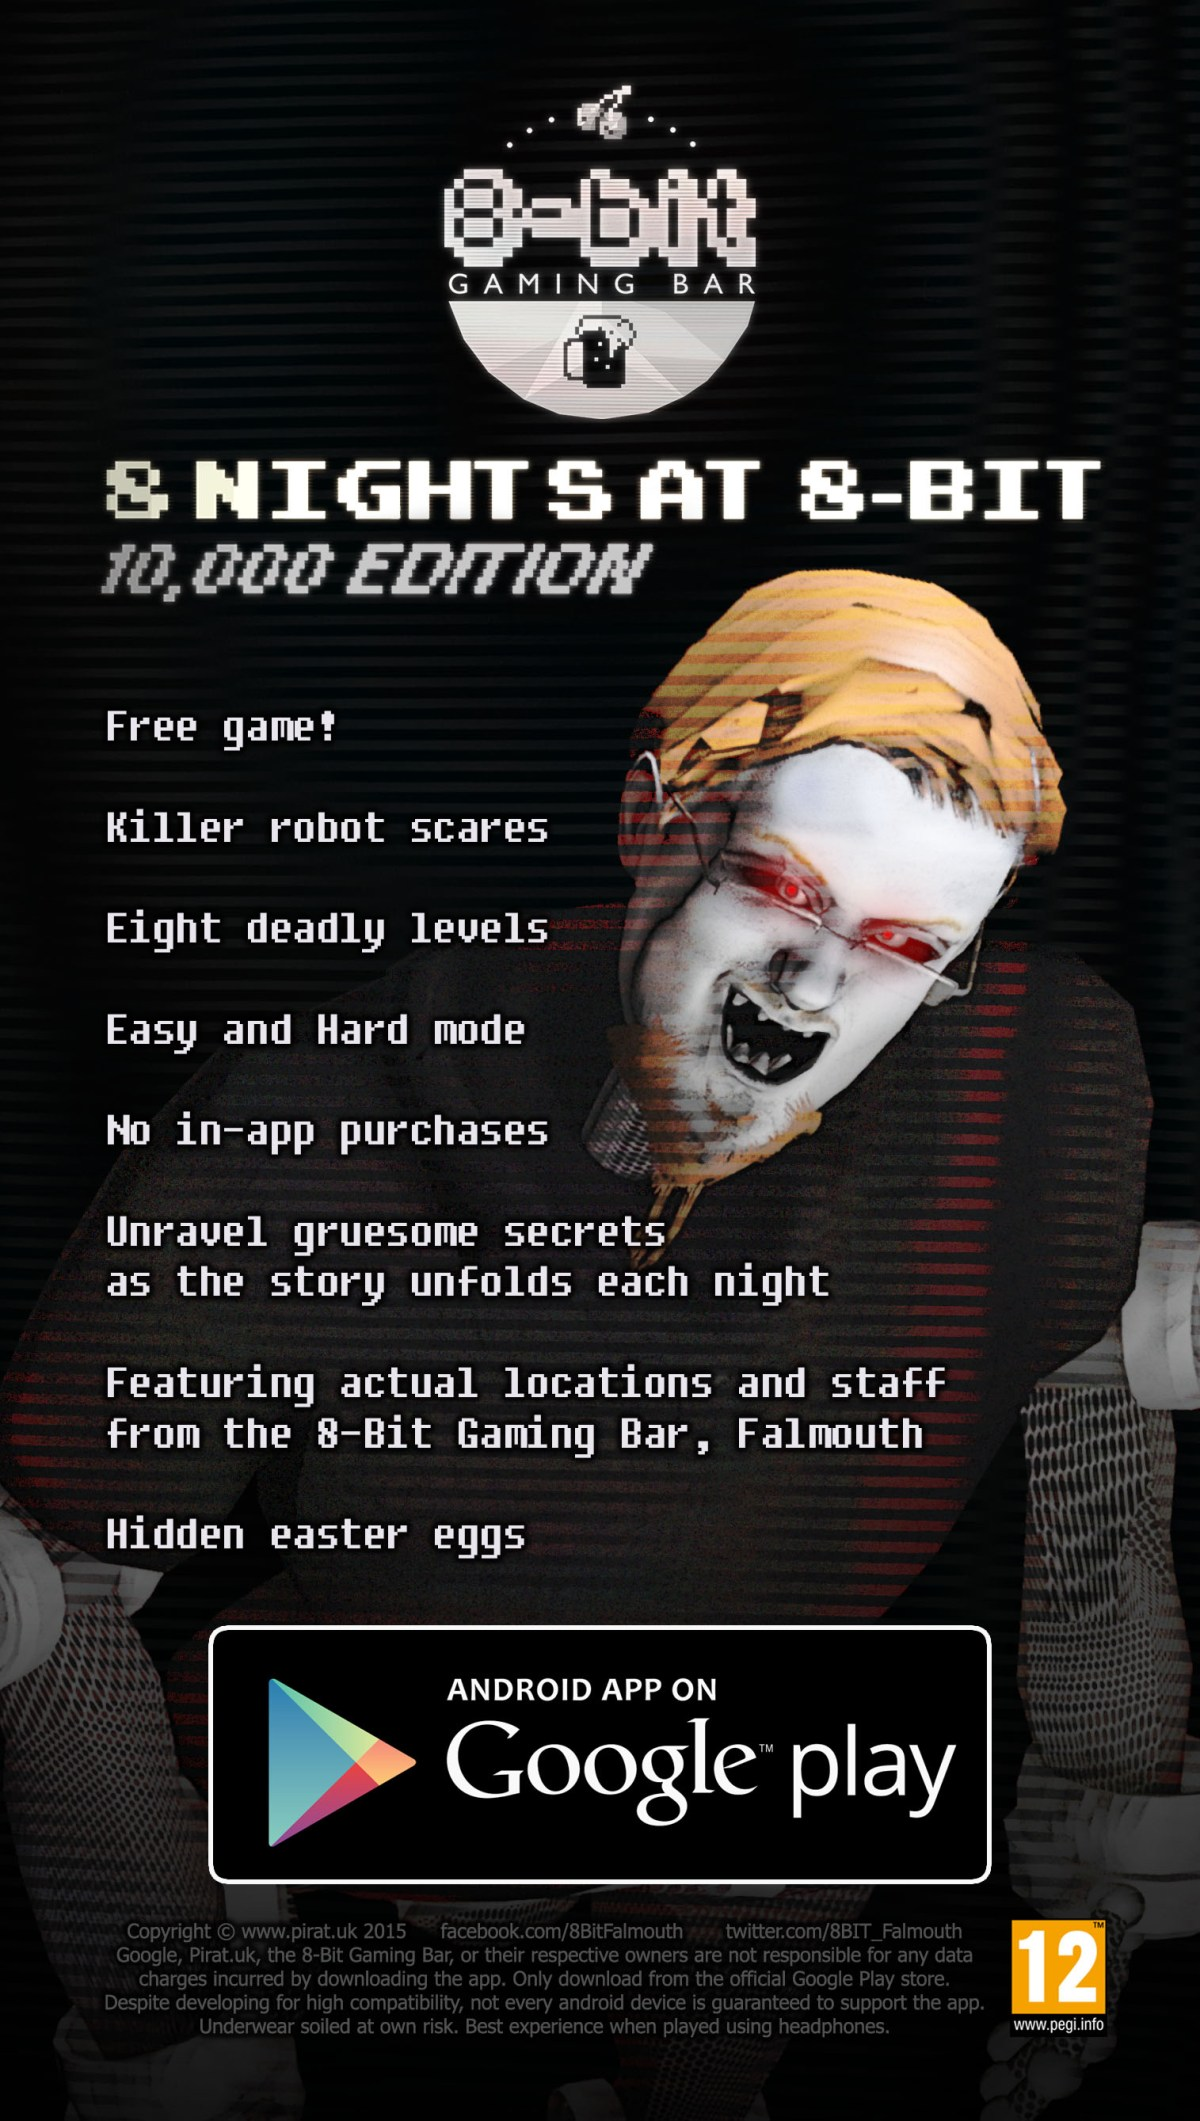 8 Nights at 8-Bit – 10,000 EDITION